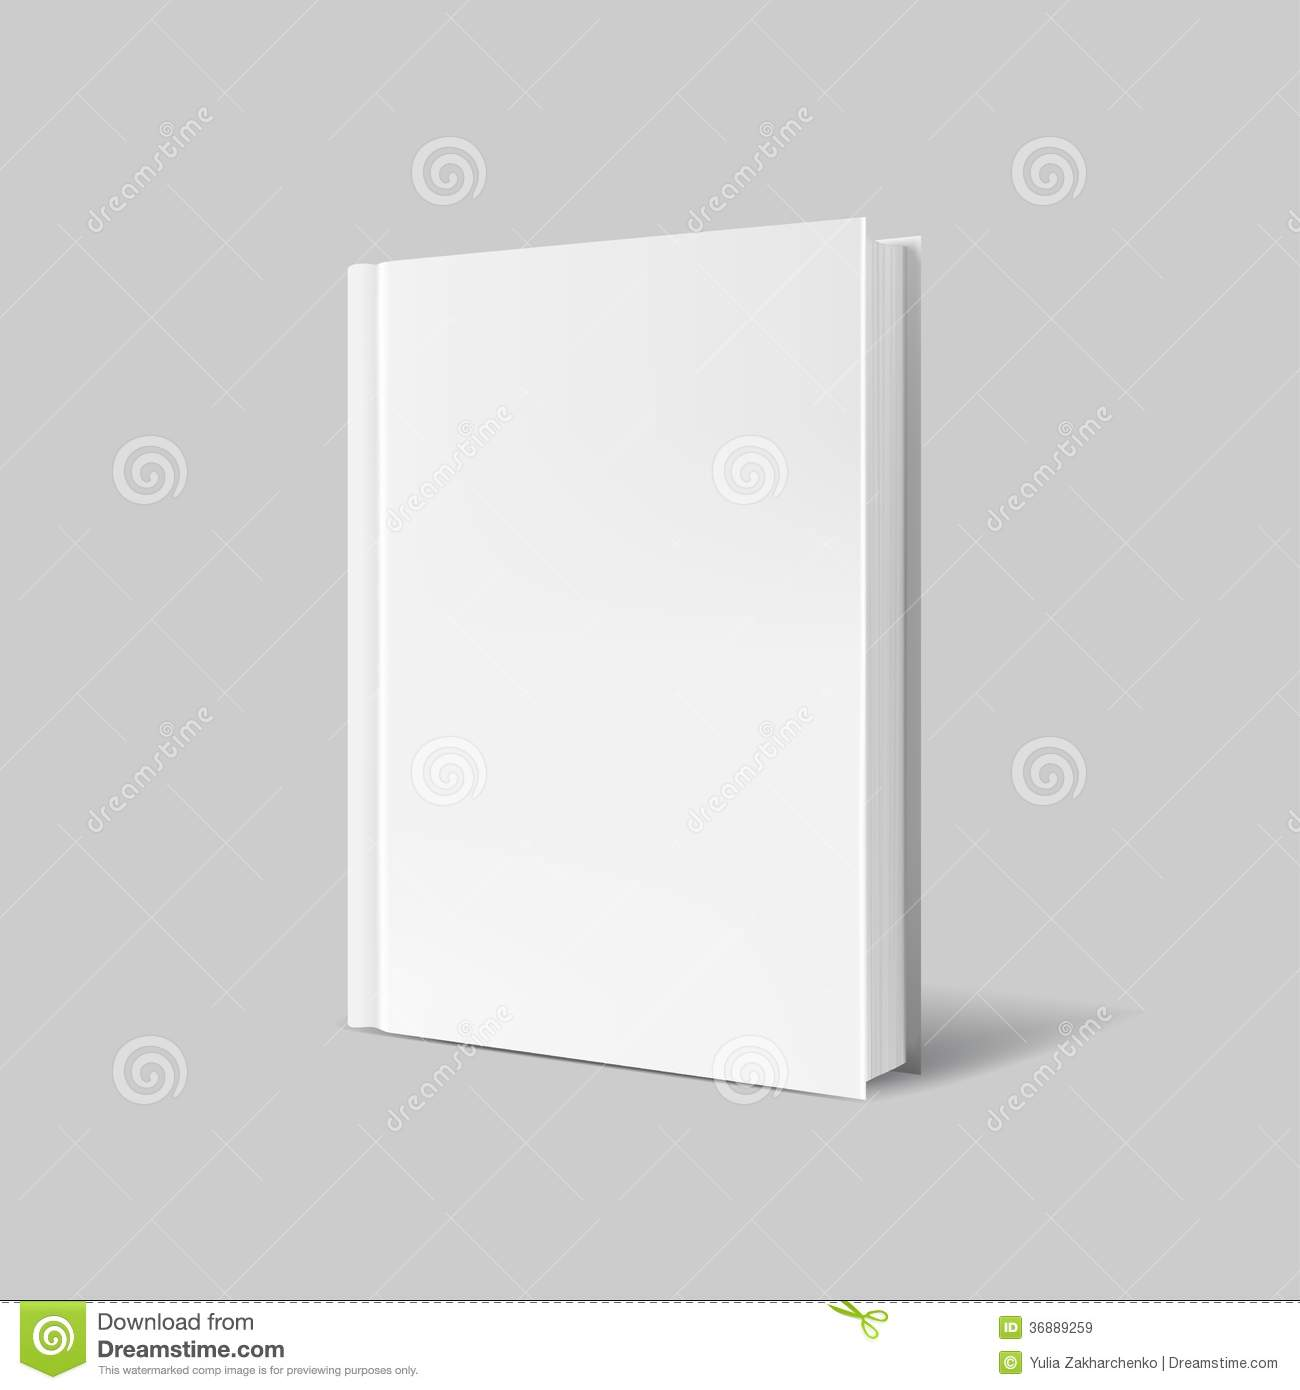 Blank Book Cover Background ~ Blank book cover over gray background royalty free stock